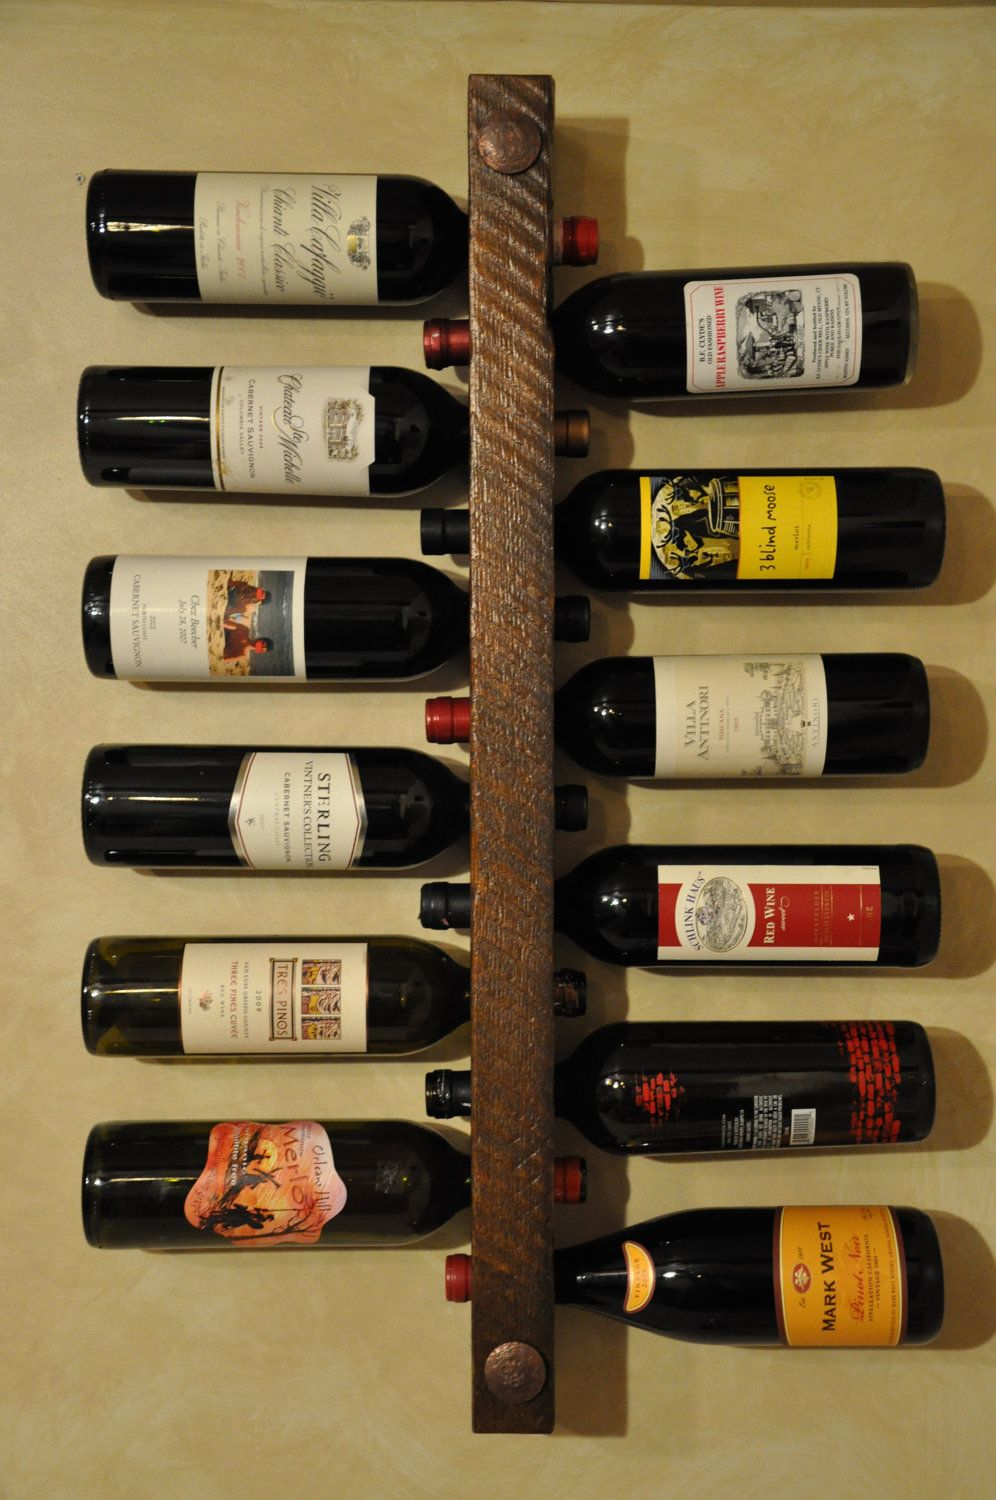 Wall Mounted Wine Rack 12 Bottle Vertical Wine Rack Wine Storage Wine Rack Wall Mounted Wine Rack Wood 5th Anniversary Gift For Him Wall Mounted Wine Rack Wine Bottle Storage Wine